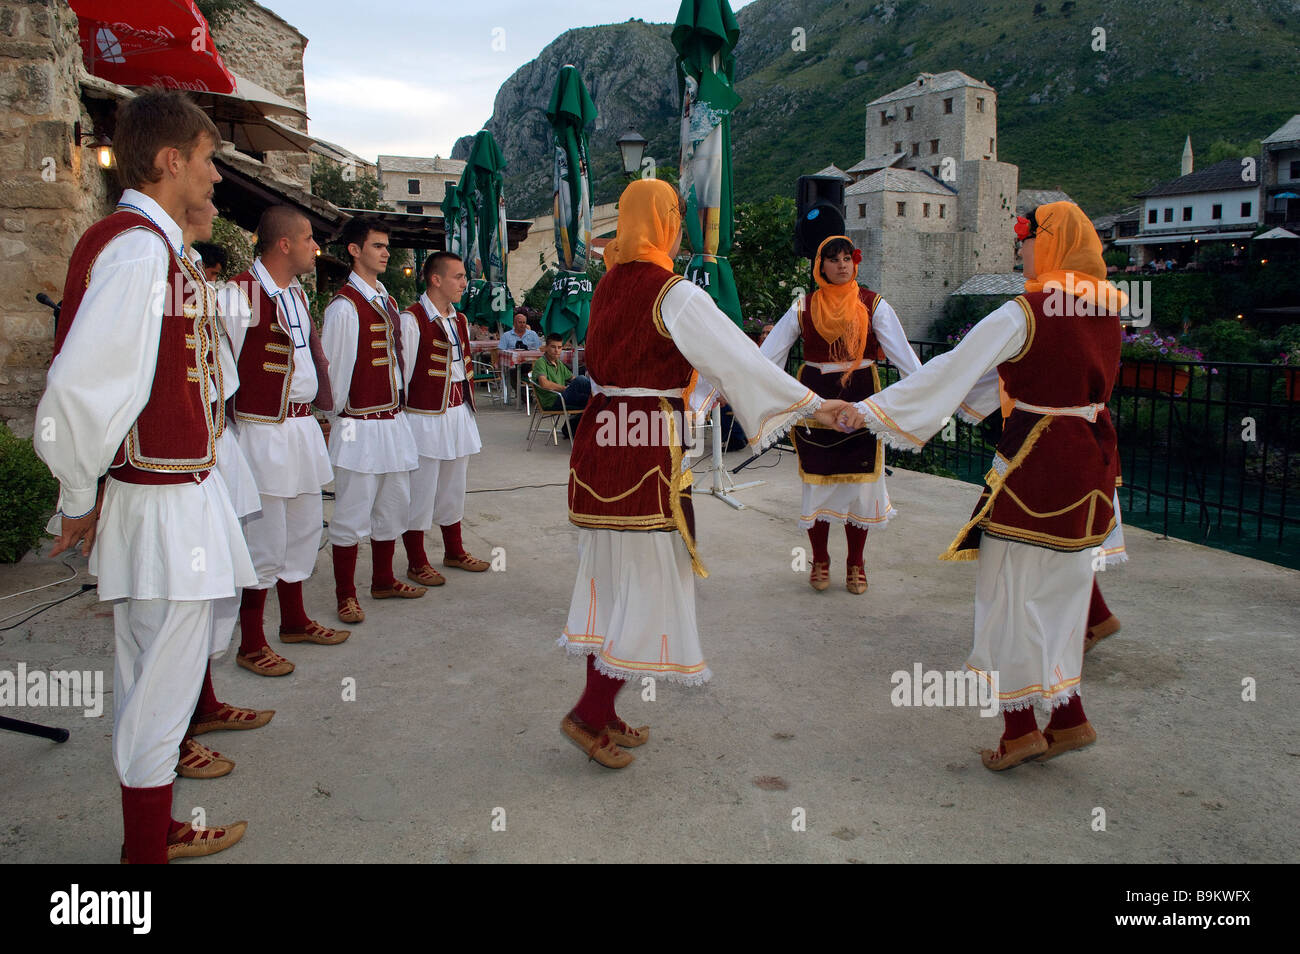 Bosnia and Herzegovina, Mostar, folk dances - Stock Image